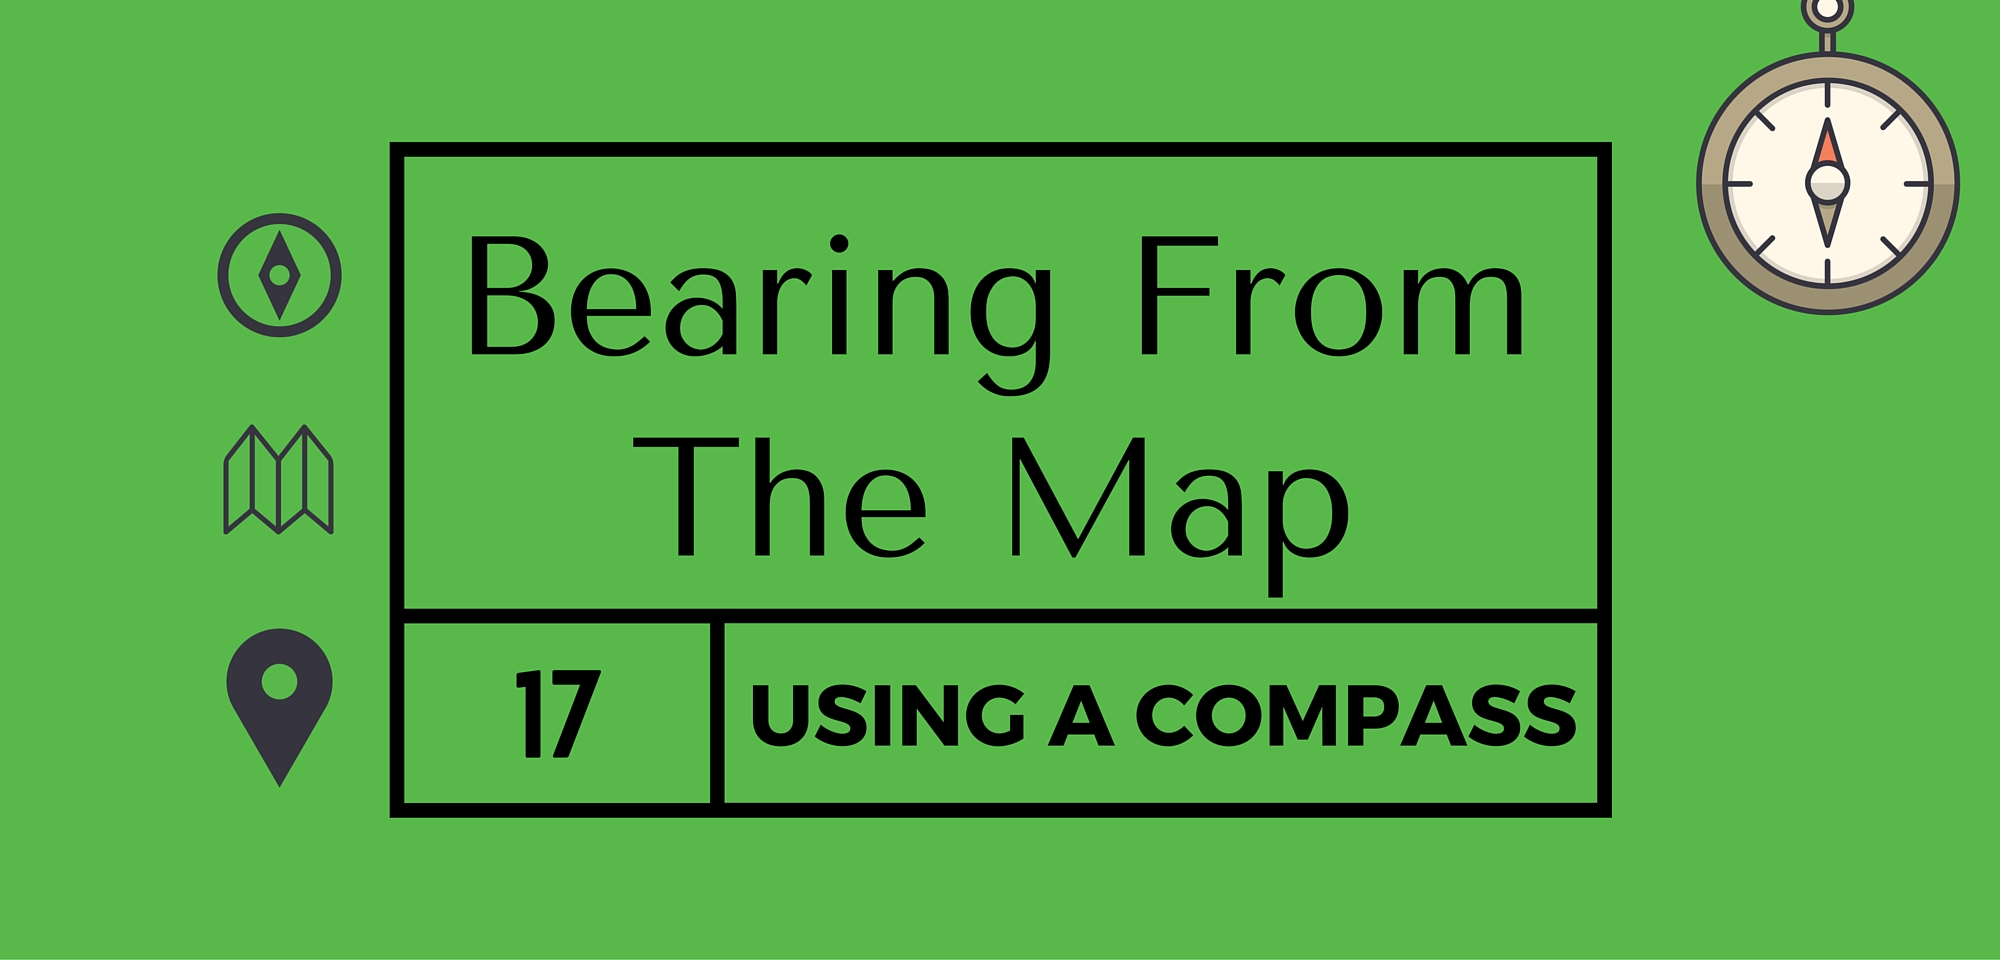 Bearing From the Map